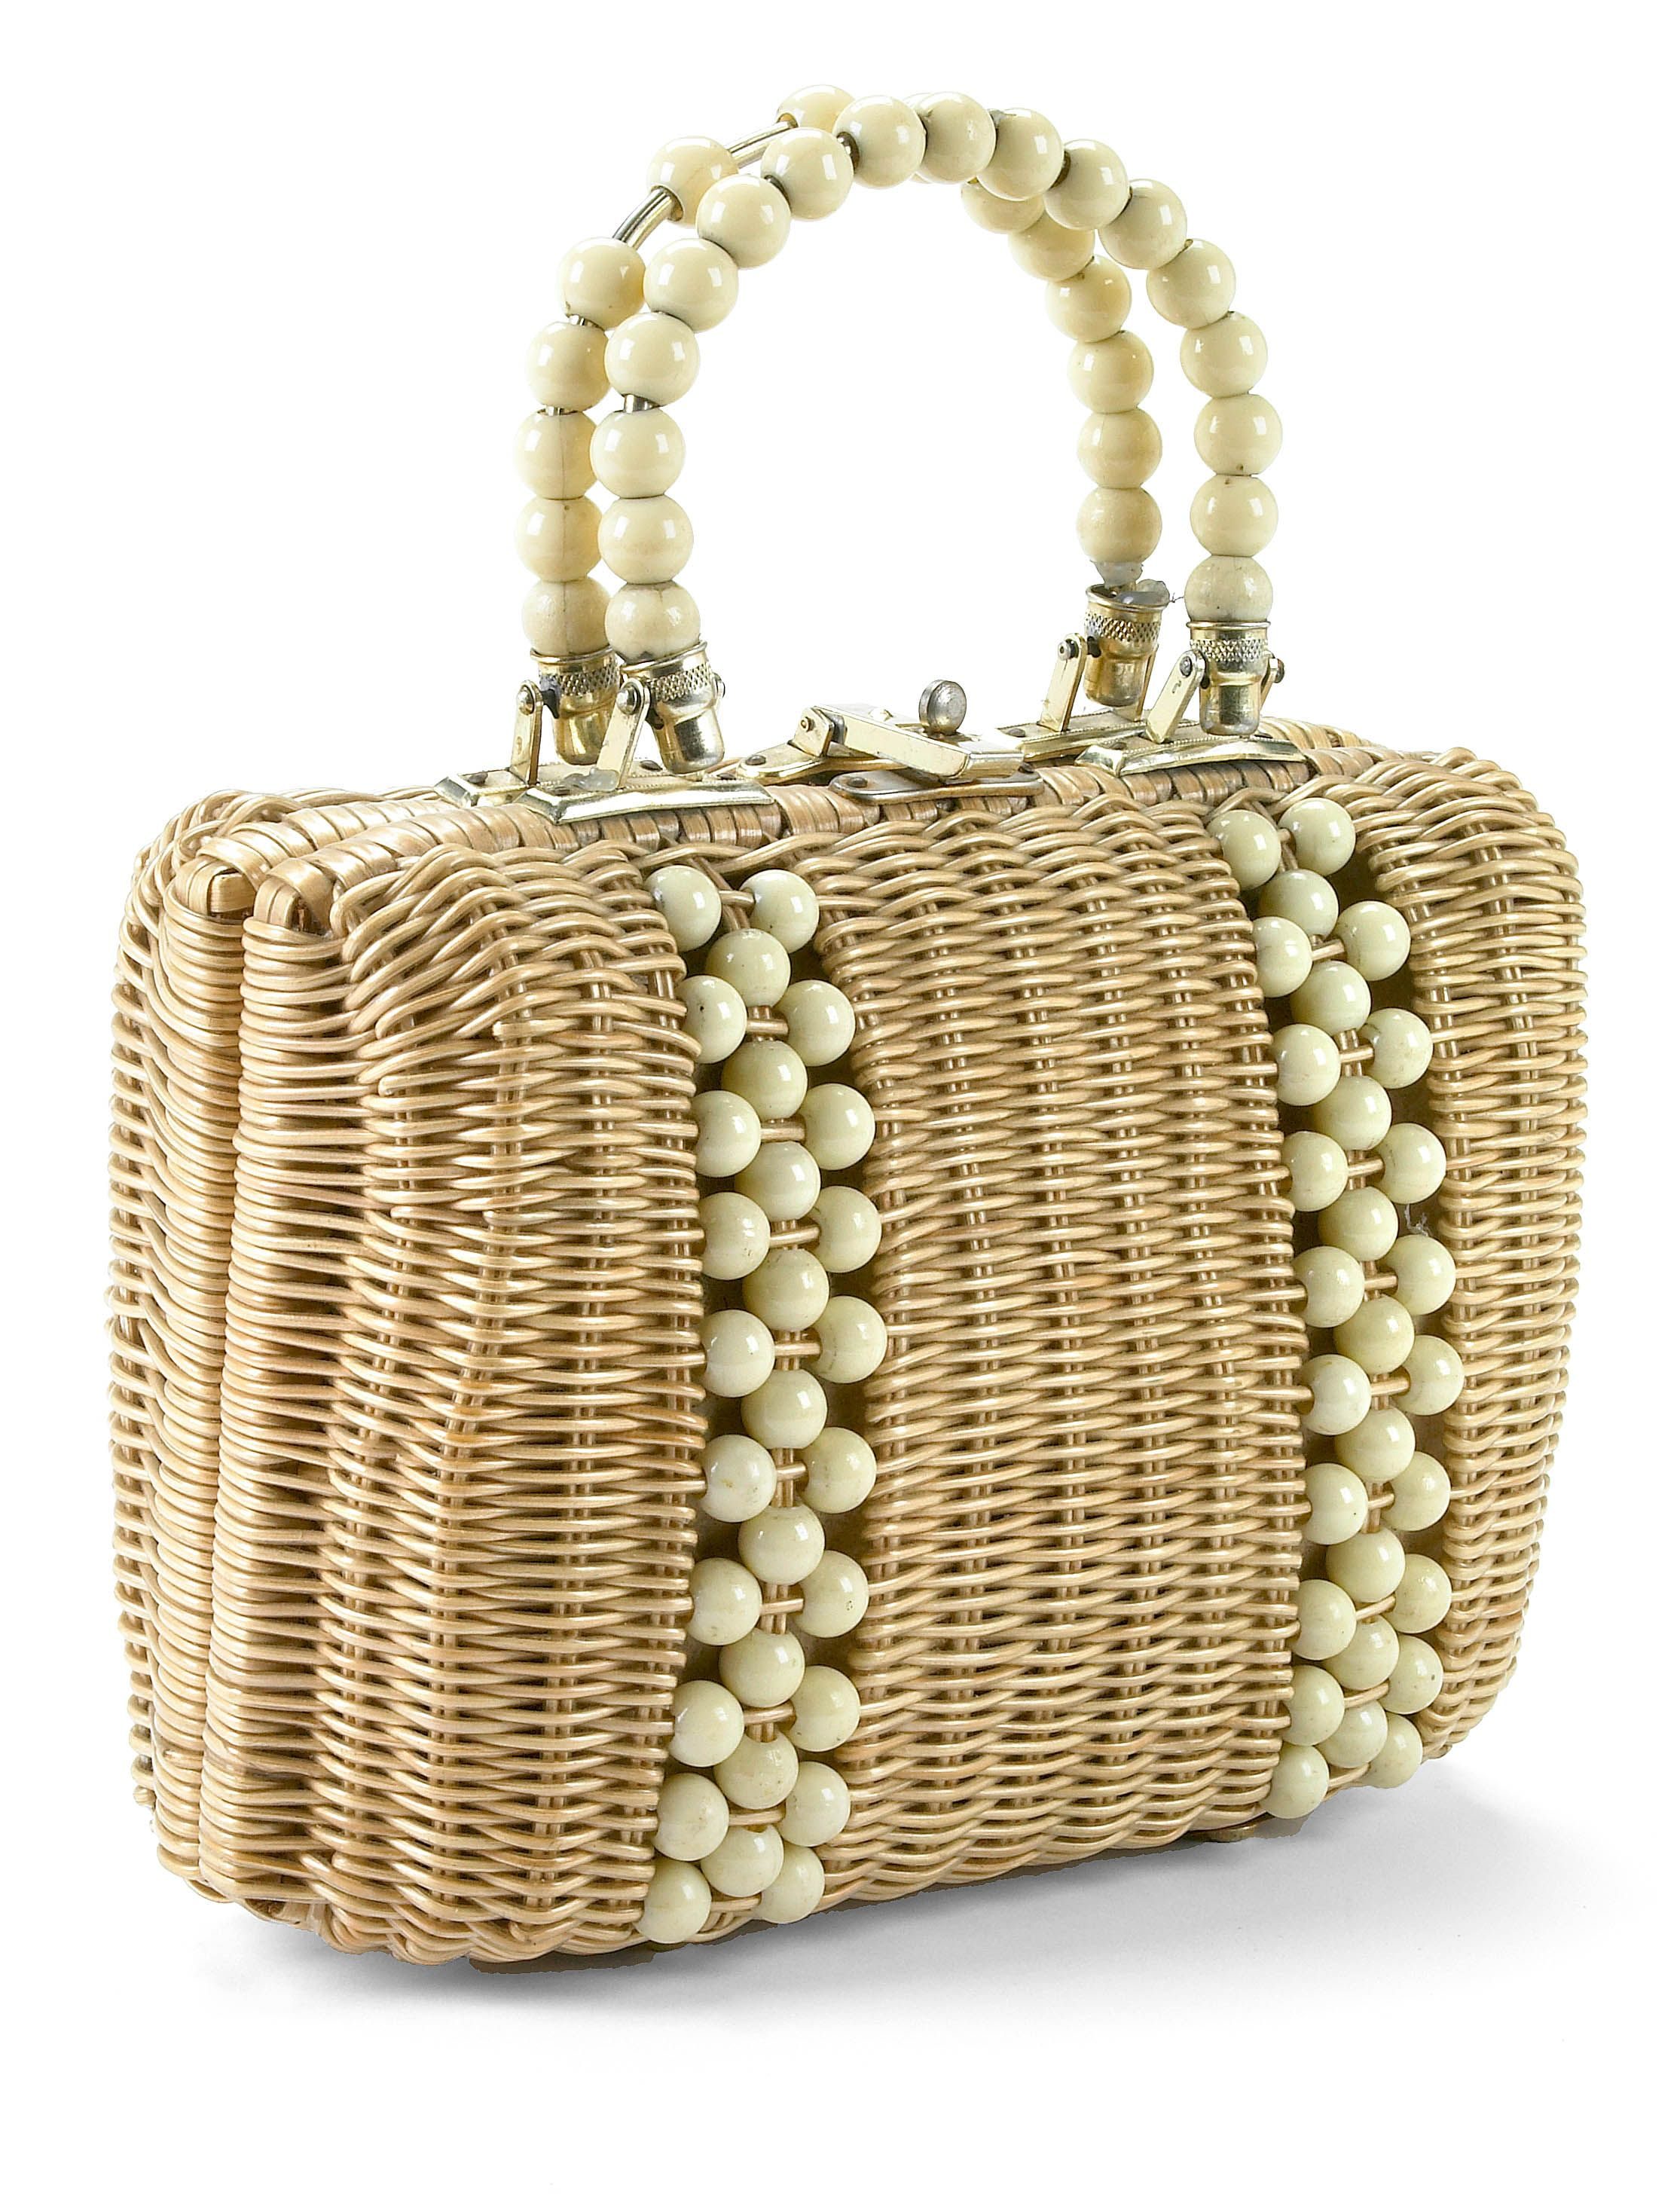 Sophia Petrillo Purse filled with Sherry Bottles, Near the